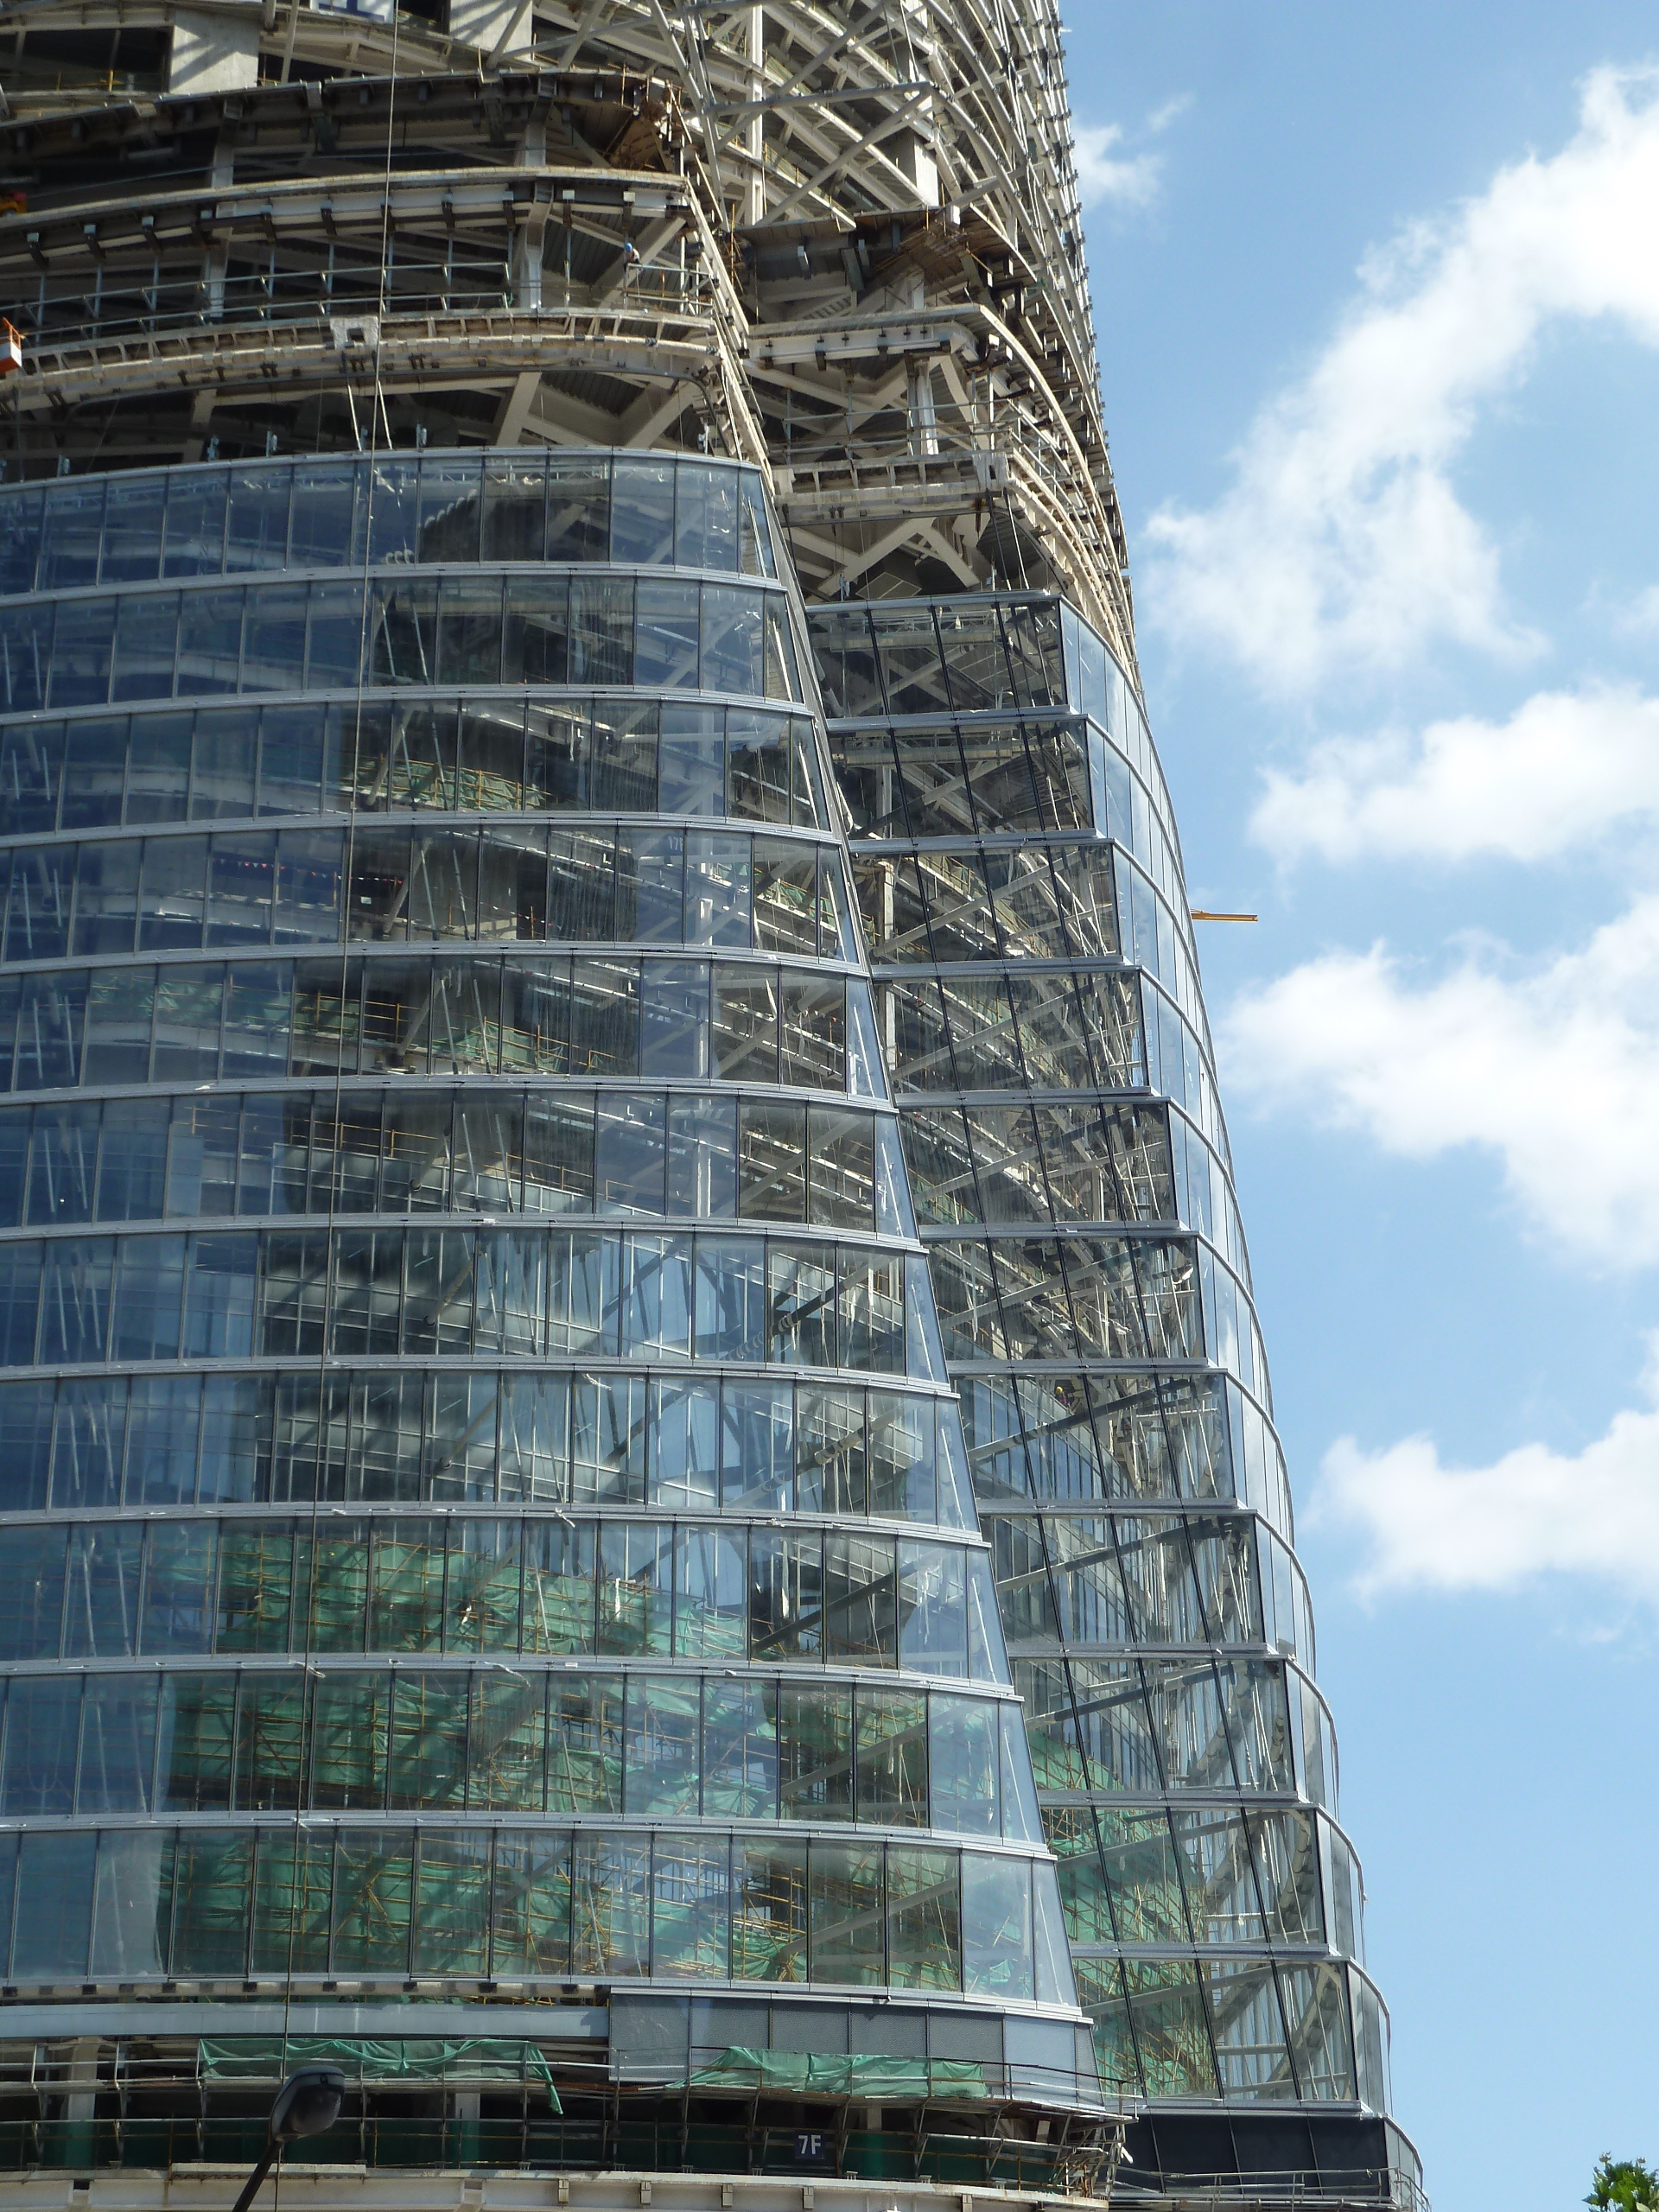 Building Construction Wallpaper Hd Gallery Of Winners Of The Inaugural China Tall Building